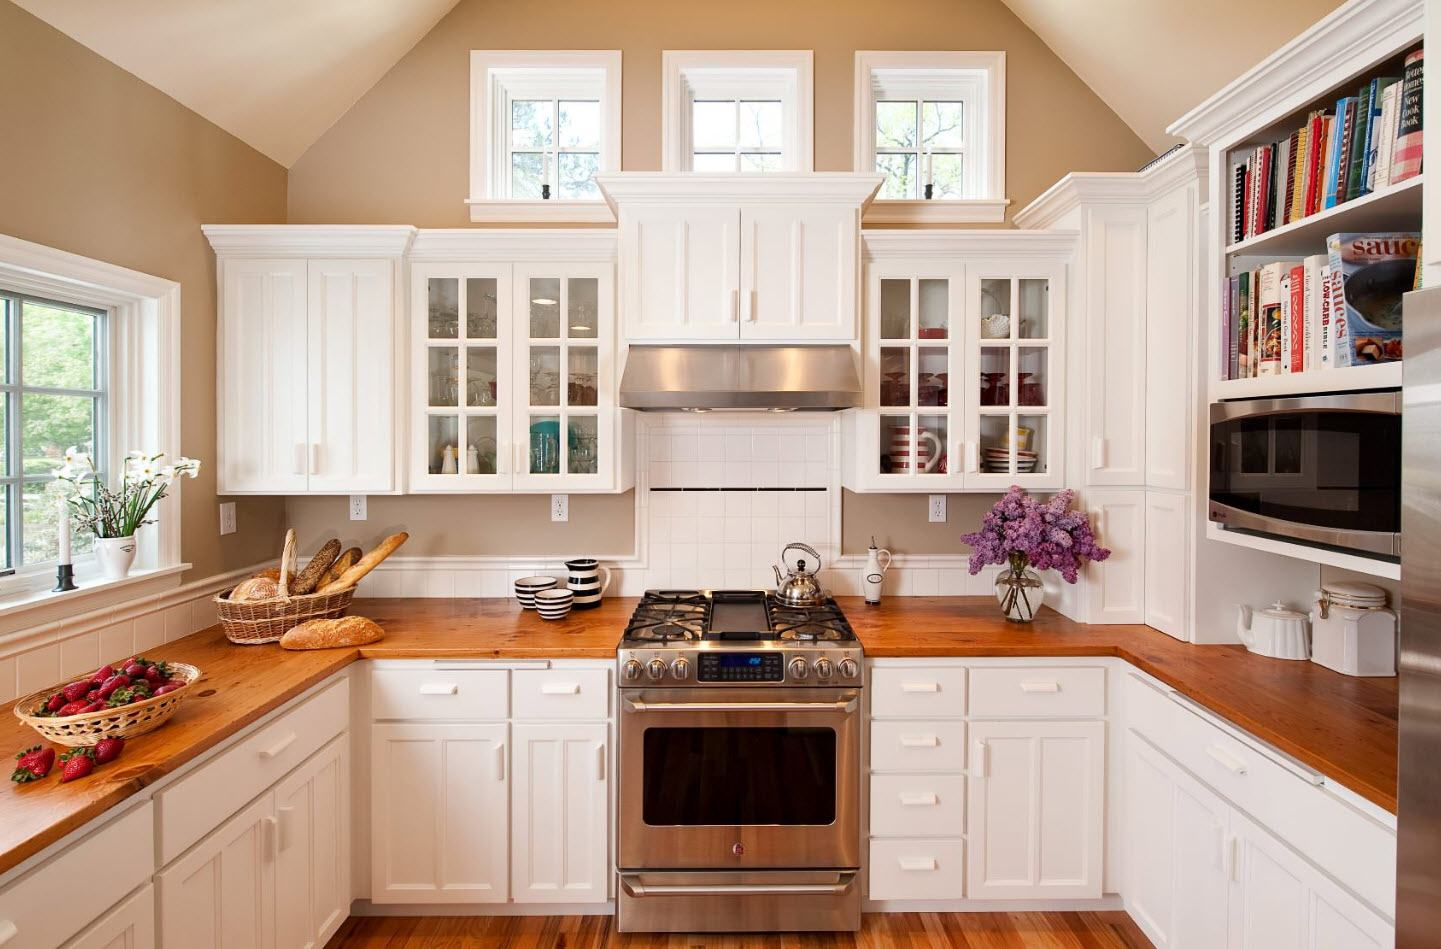 White kitchen facades and light gray walls